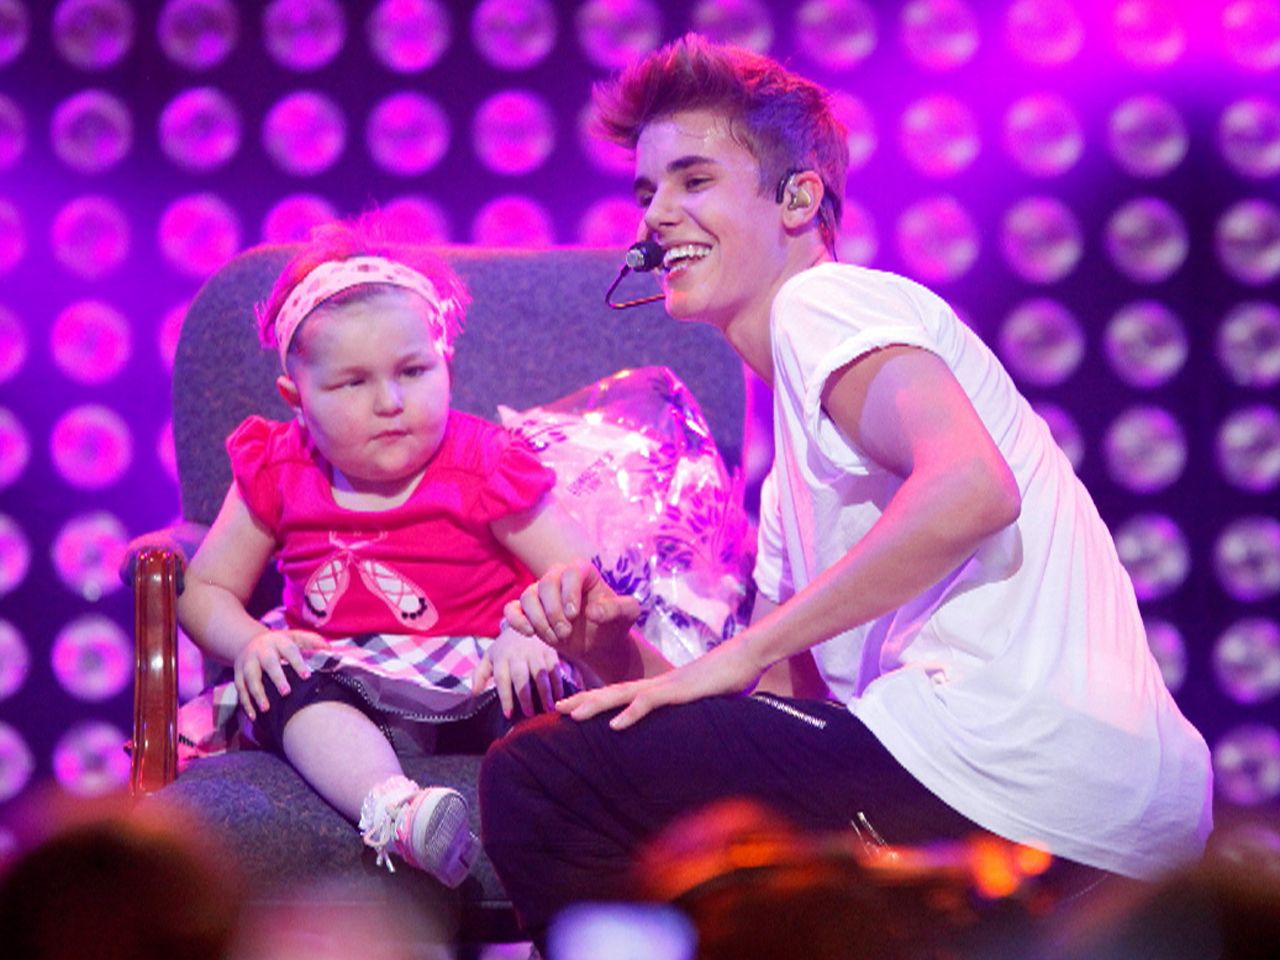 Girl befriended by Bieber loses cancer battle